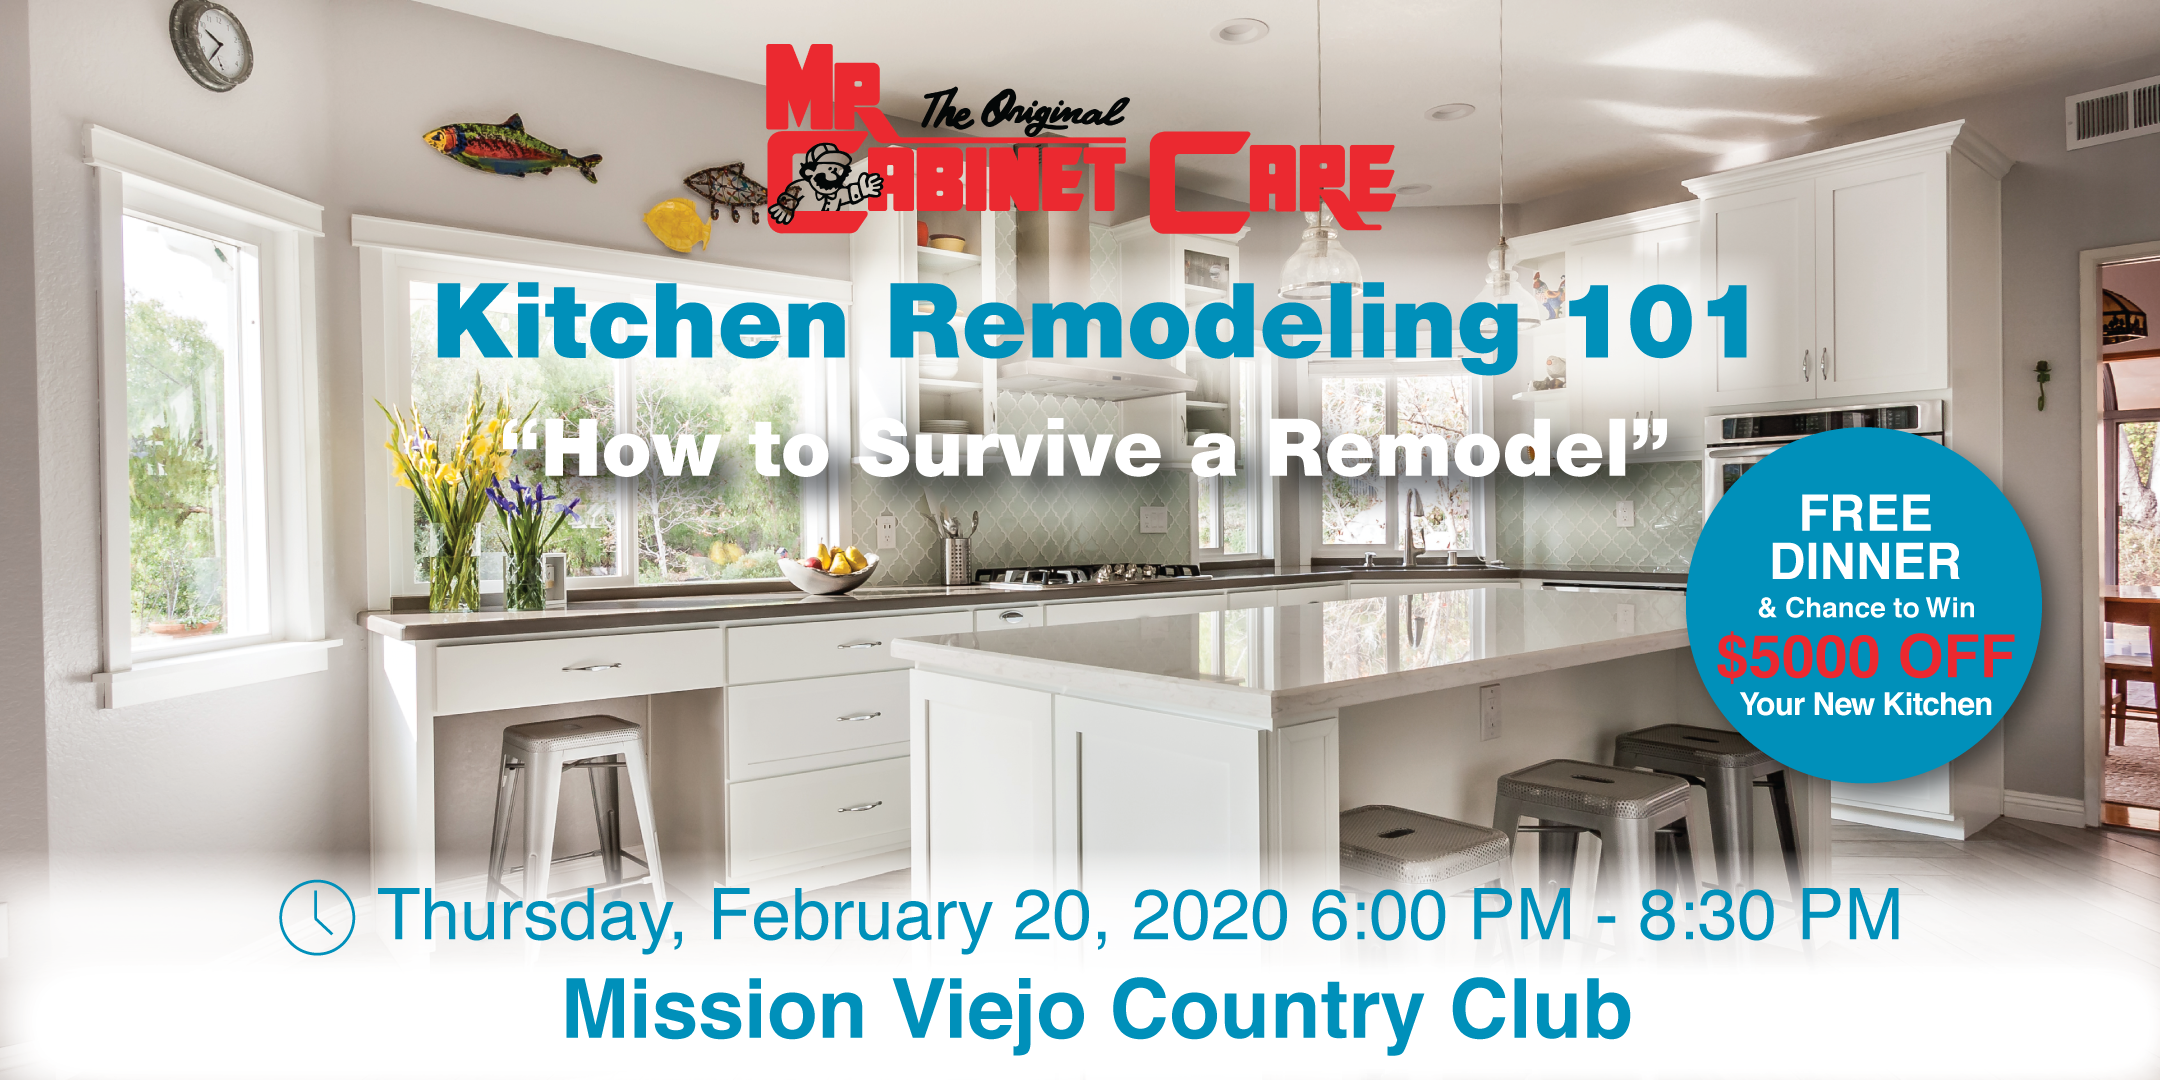 Kitchen Remodeling 101 Free Dinner Workshop Mission Viejo Country Club 20 Feb 2020